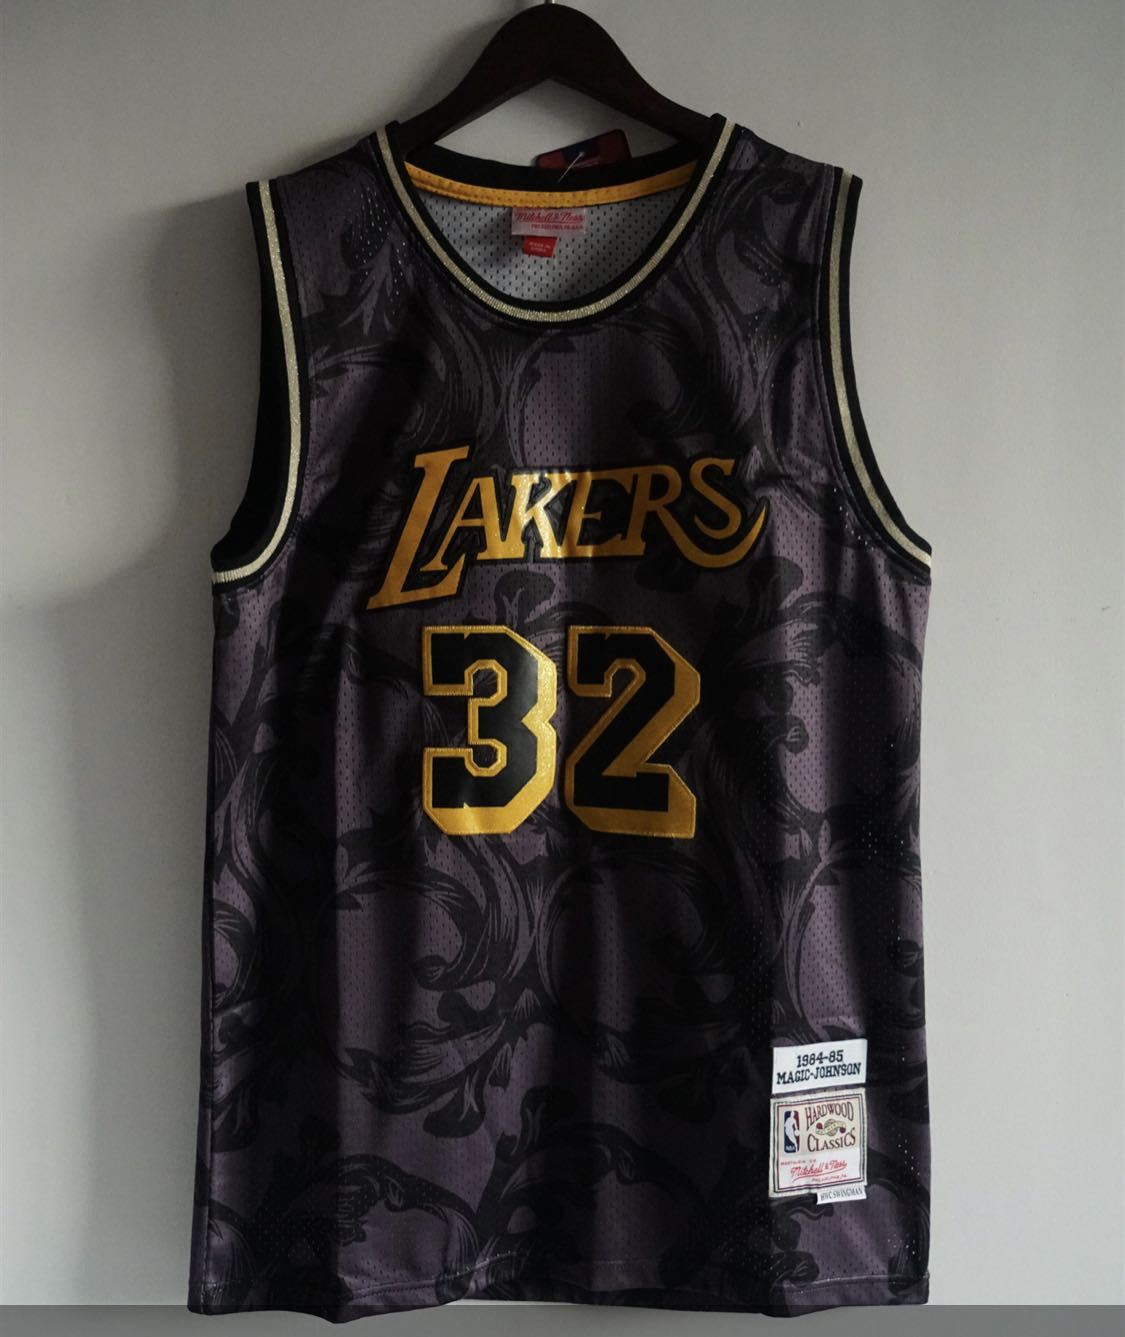 all black lakers jersey Off 57% - www.bashhguidelines.org